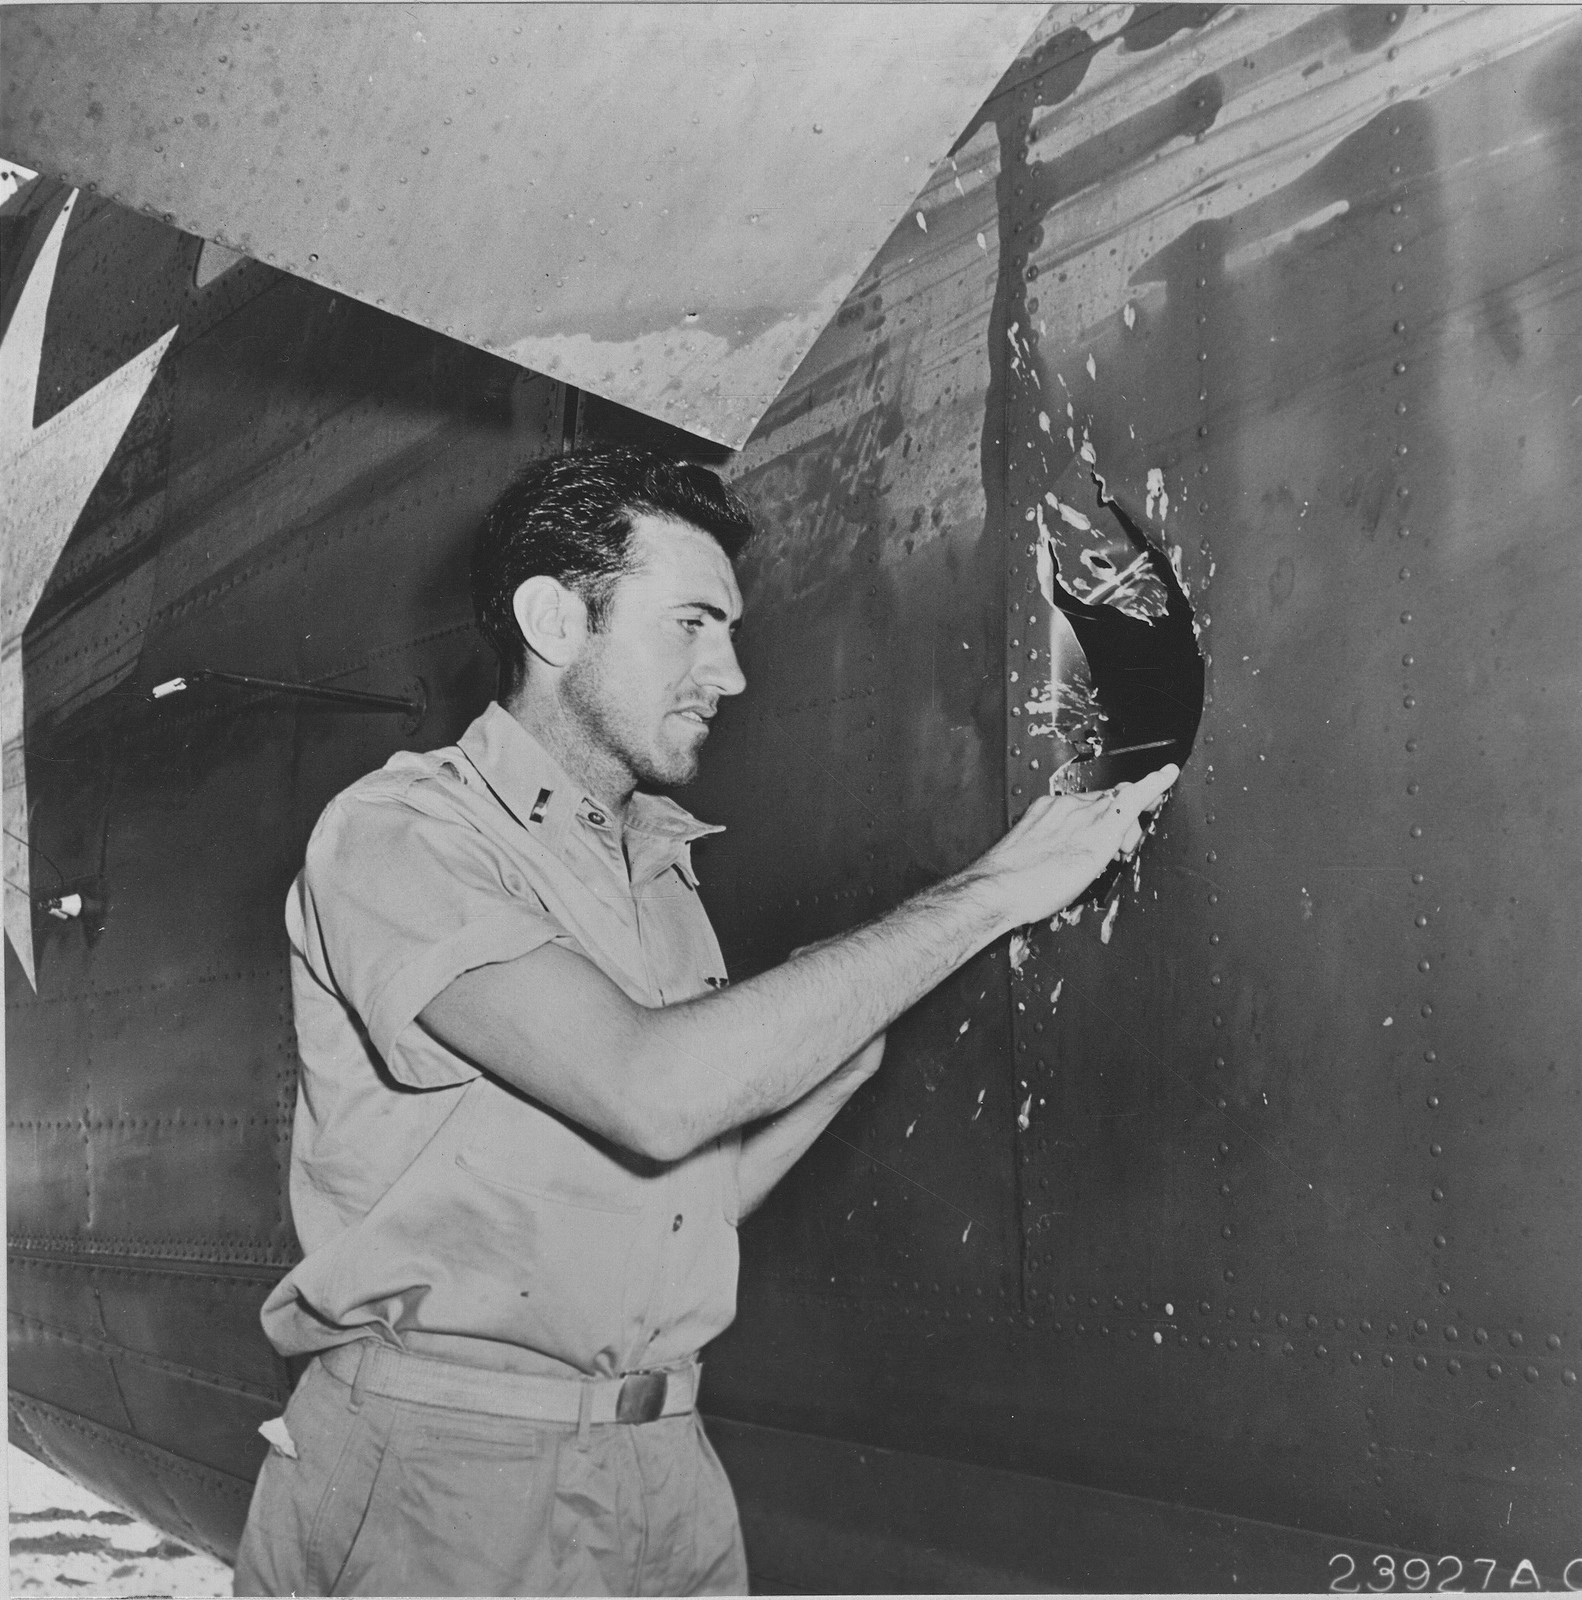 Photograph of Lt. Louis Zamperini, Former NCAA [National Collegiate Athletic Association] Miler and Olympic Team Member, Bombardier, on Lt. Russel A. Phillips' Plane, Examining 20 mm Japanese Explosive Shell Hole in the Side of Fuselage